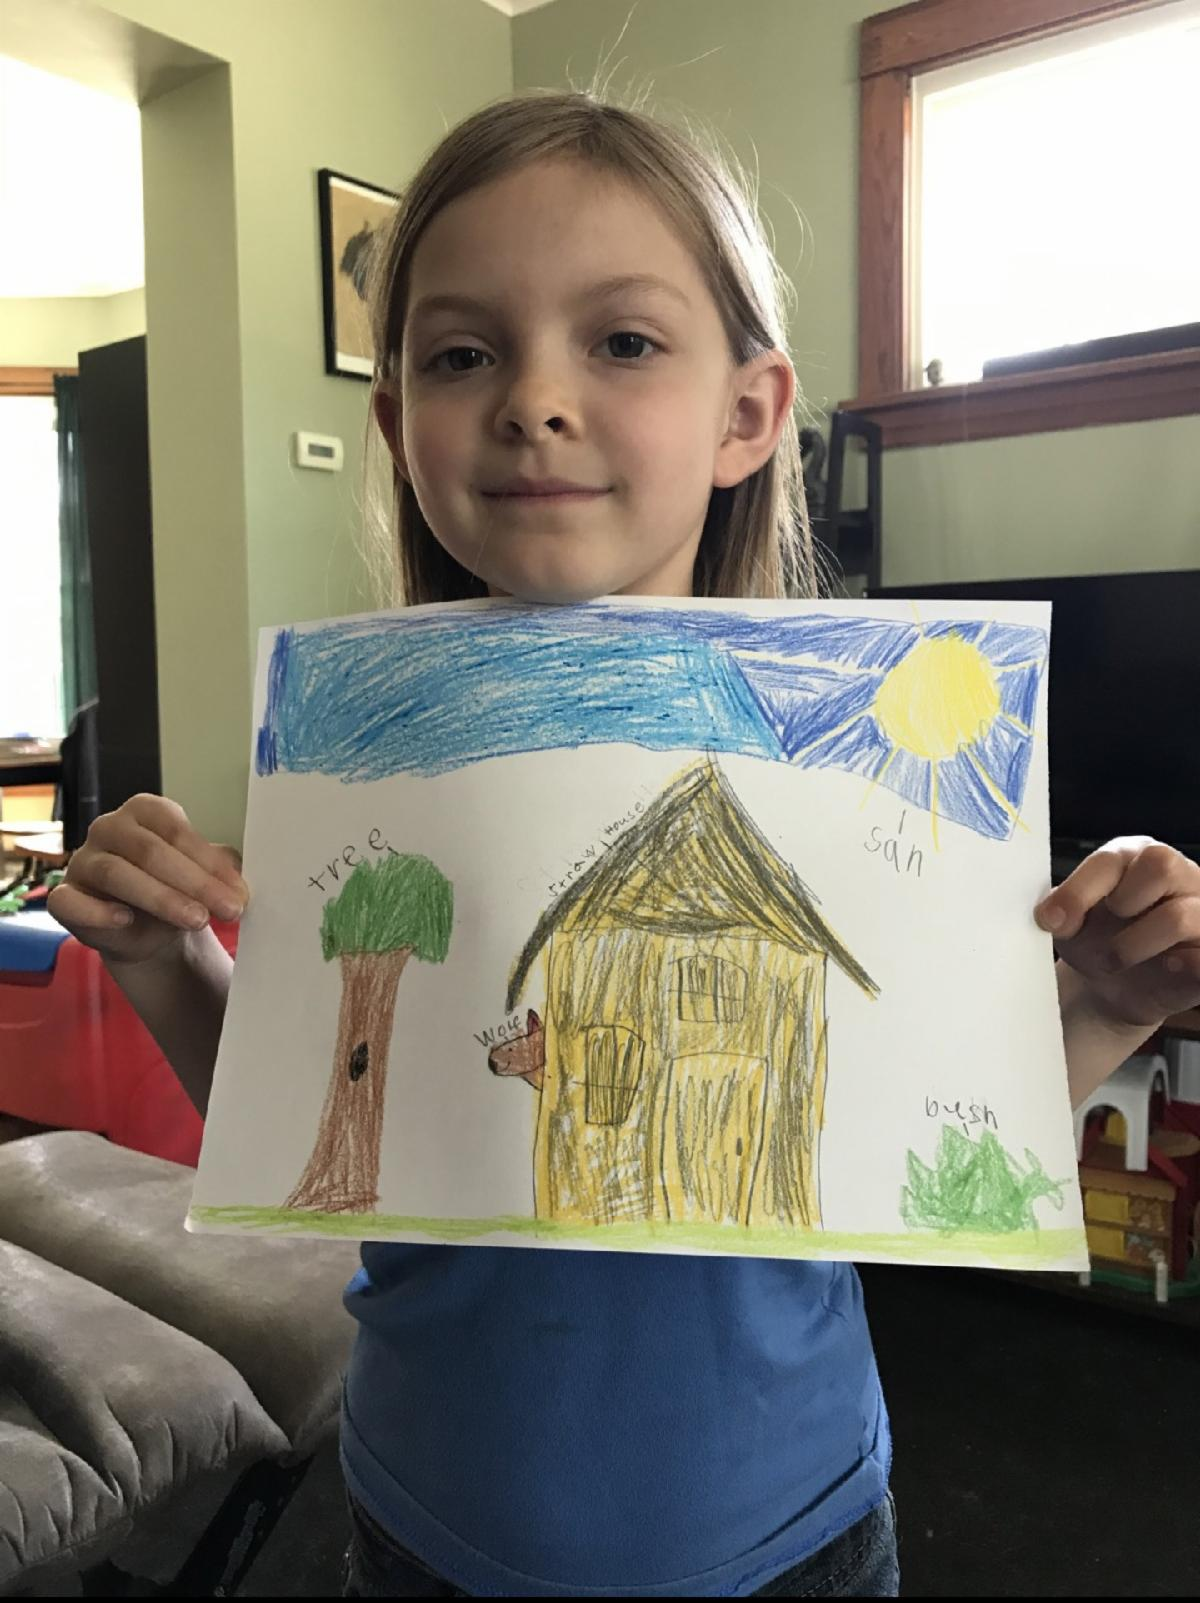 Young girl holding homemade art drawing of house, tree and sky with sun